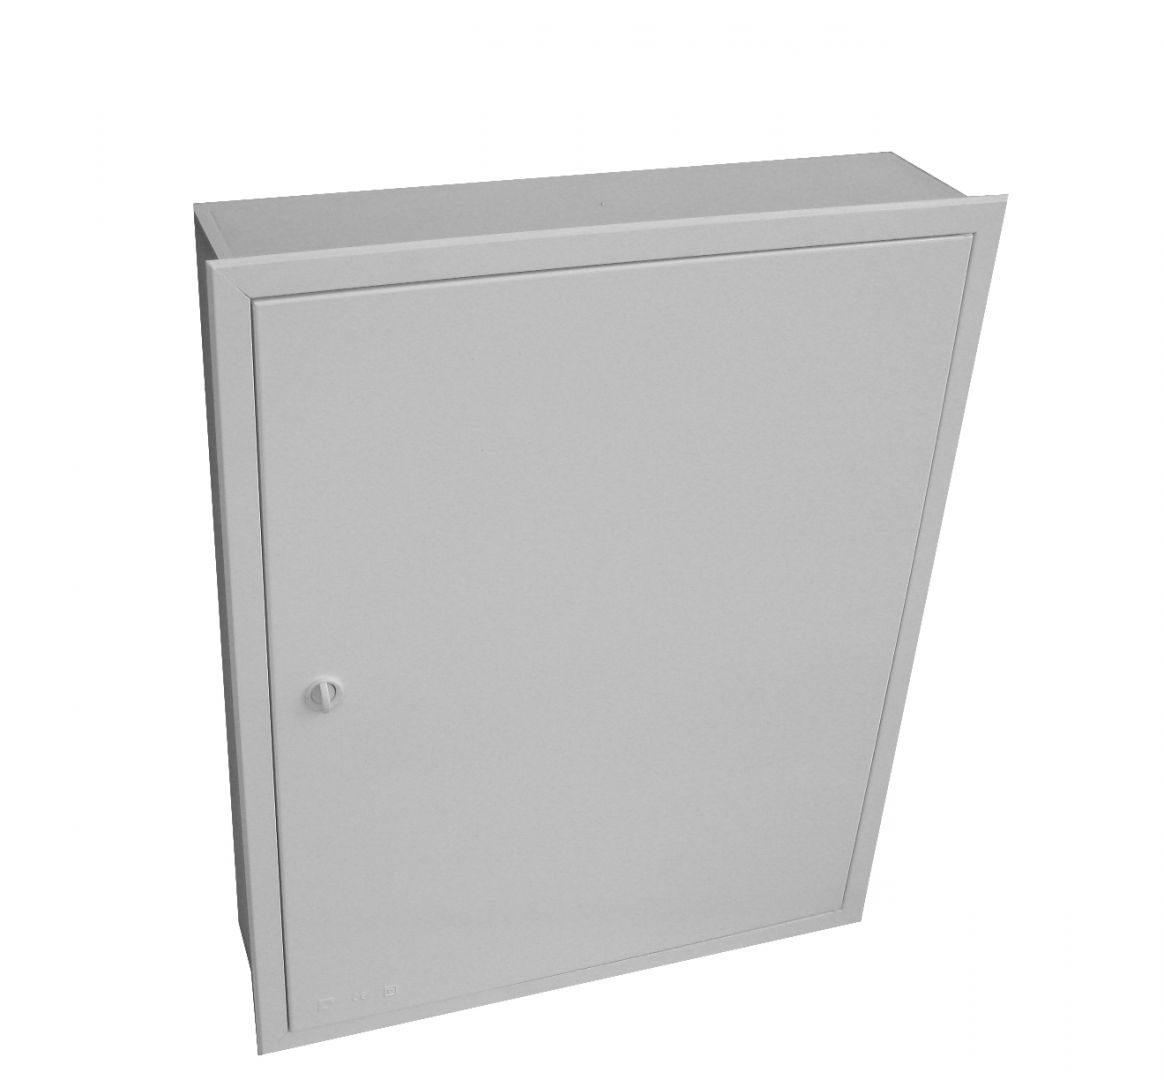 EMPTY BUILT-IN VISBOX BOX WITH DOOR AND FRAME 500X500X130